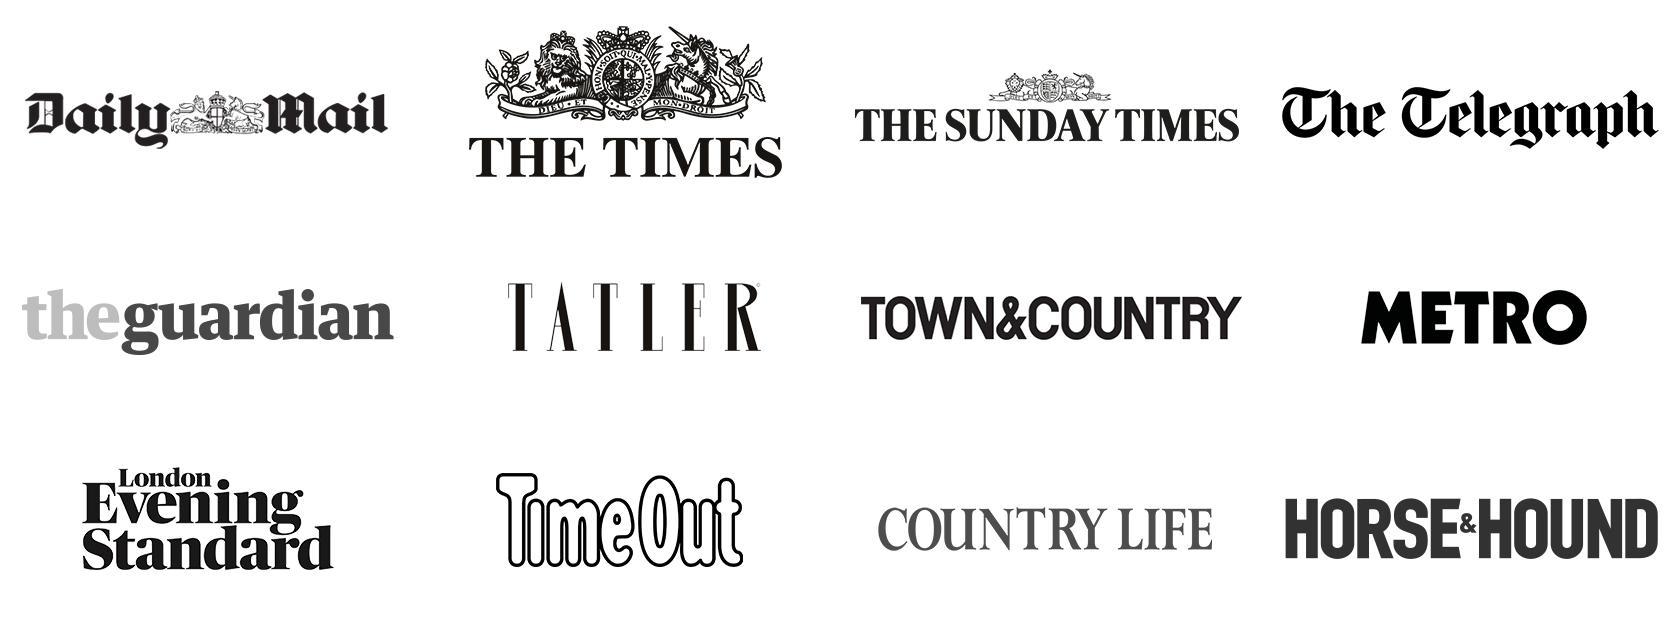 Logos for: Daily Mail, The Times, The Sunday Times, The Telegraph, The Guardian, Tatler, Town and Country, The Metro, The Evening Standard, Time Out, Country Life, Horse and Hound